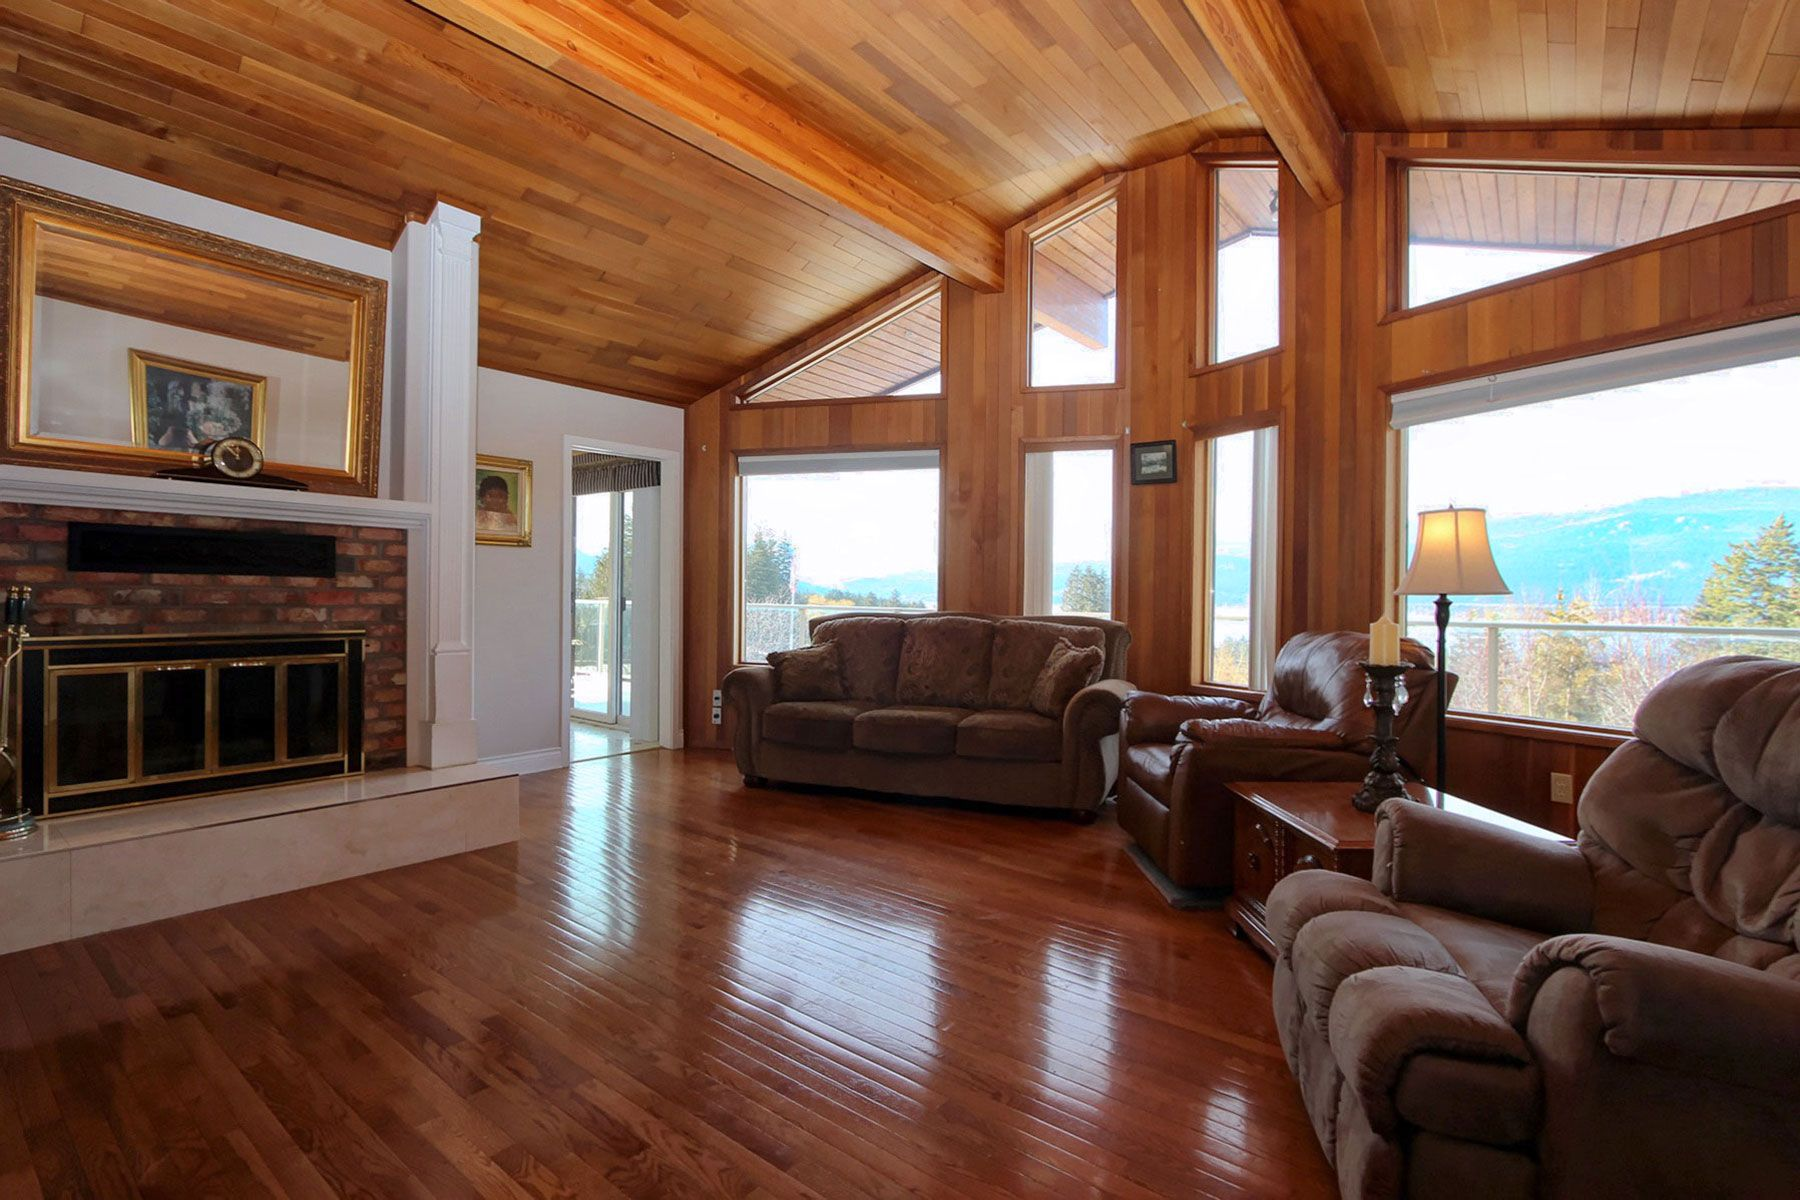 Photo 21: Photos: 1350 Trans Canada Highway in Sorrento: House for sale : MLS®# 10225818